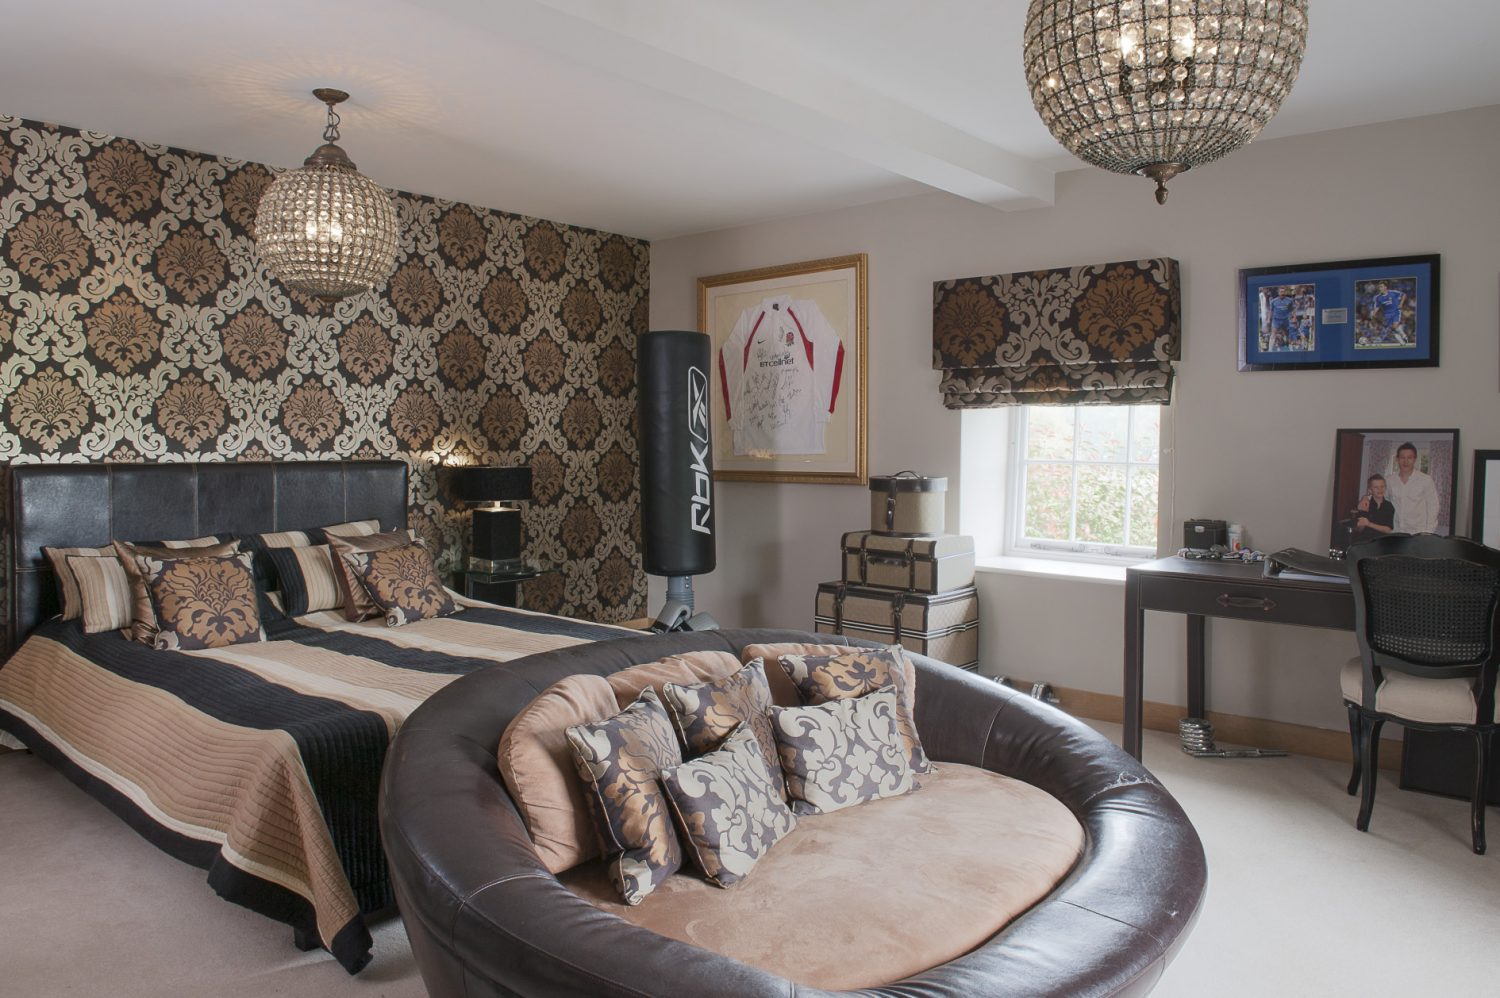 Claire's son Josh's room is papered in a striking cream, gold and chocolate damask-style wallpaper which complements the bold striped bedcover, leather sofa and campaign-style leather desk